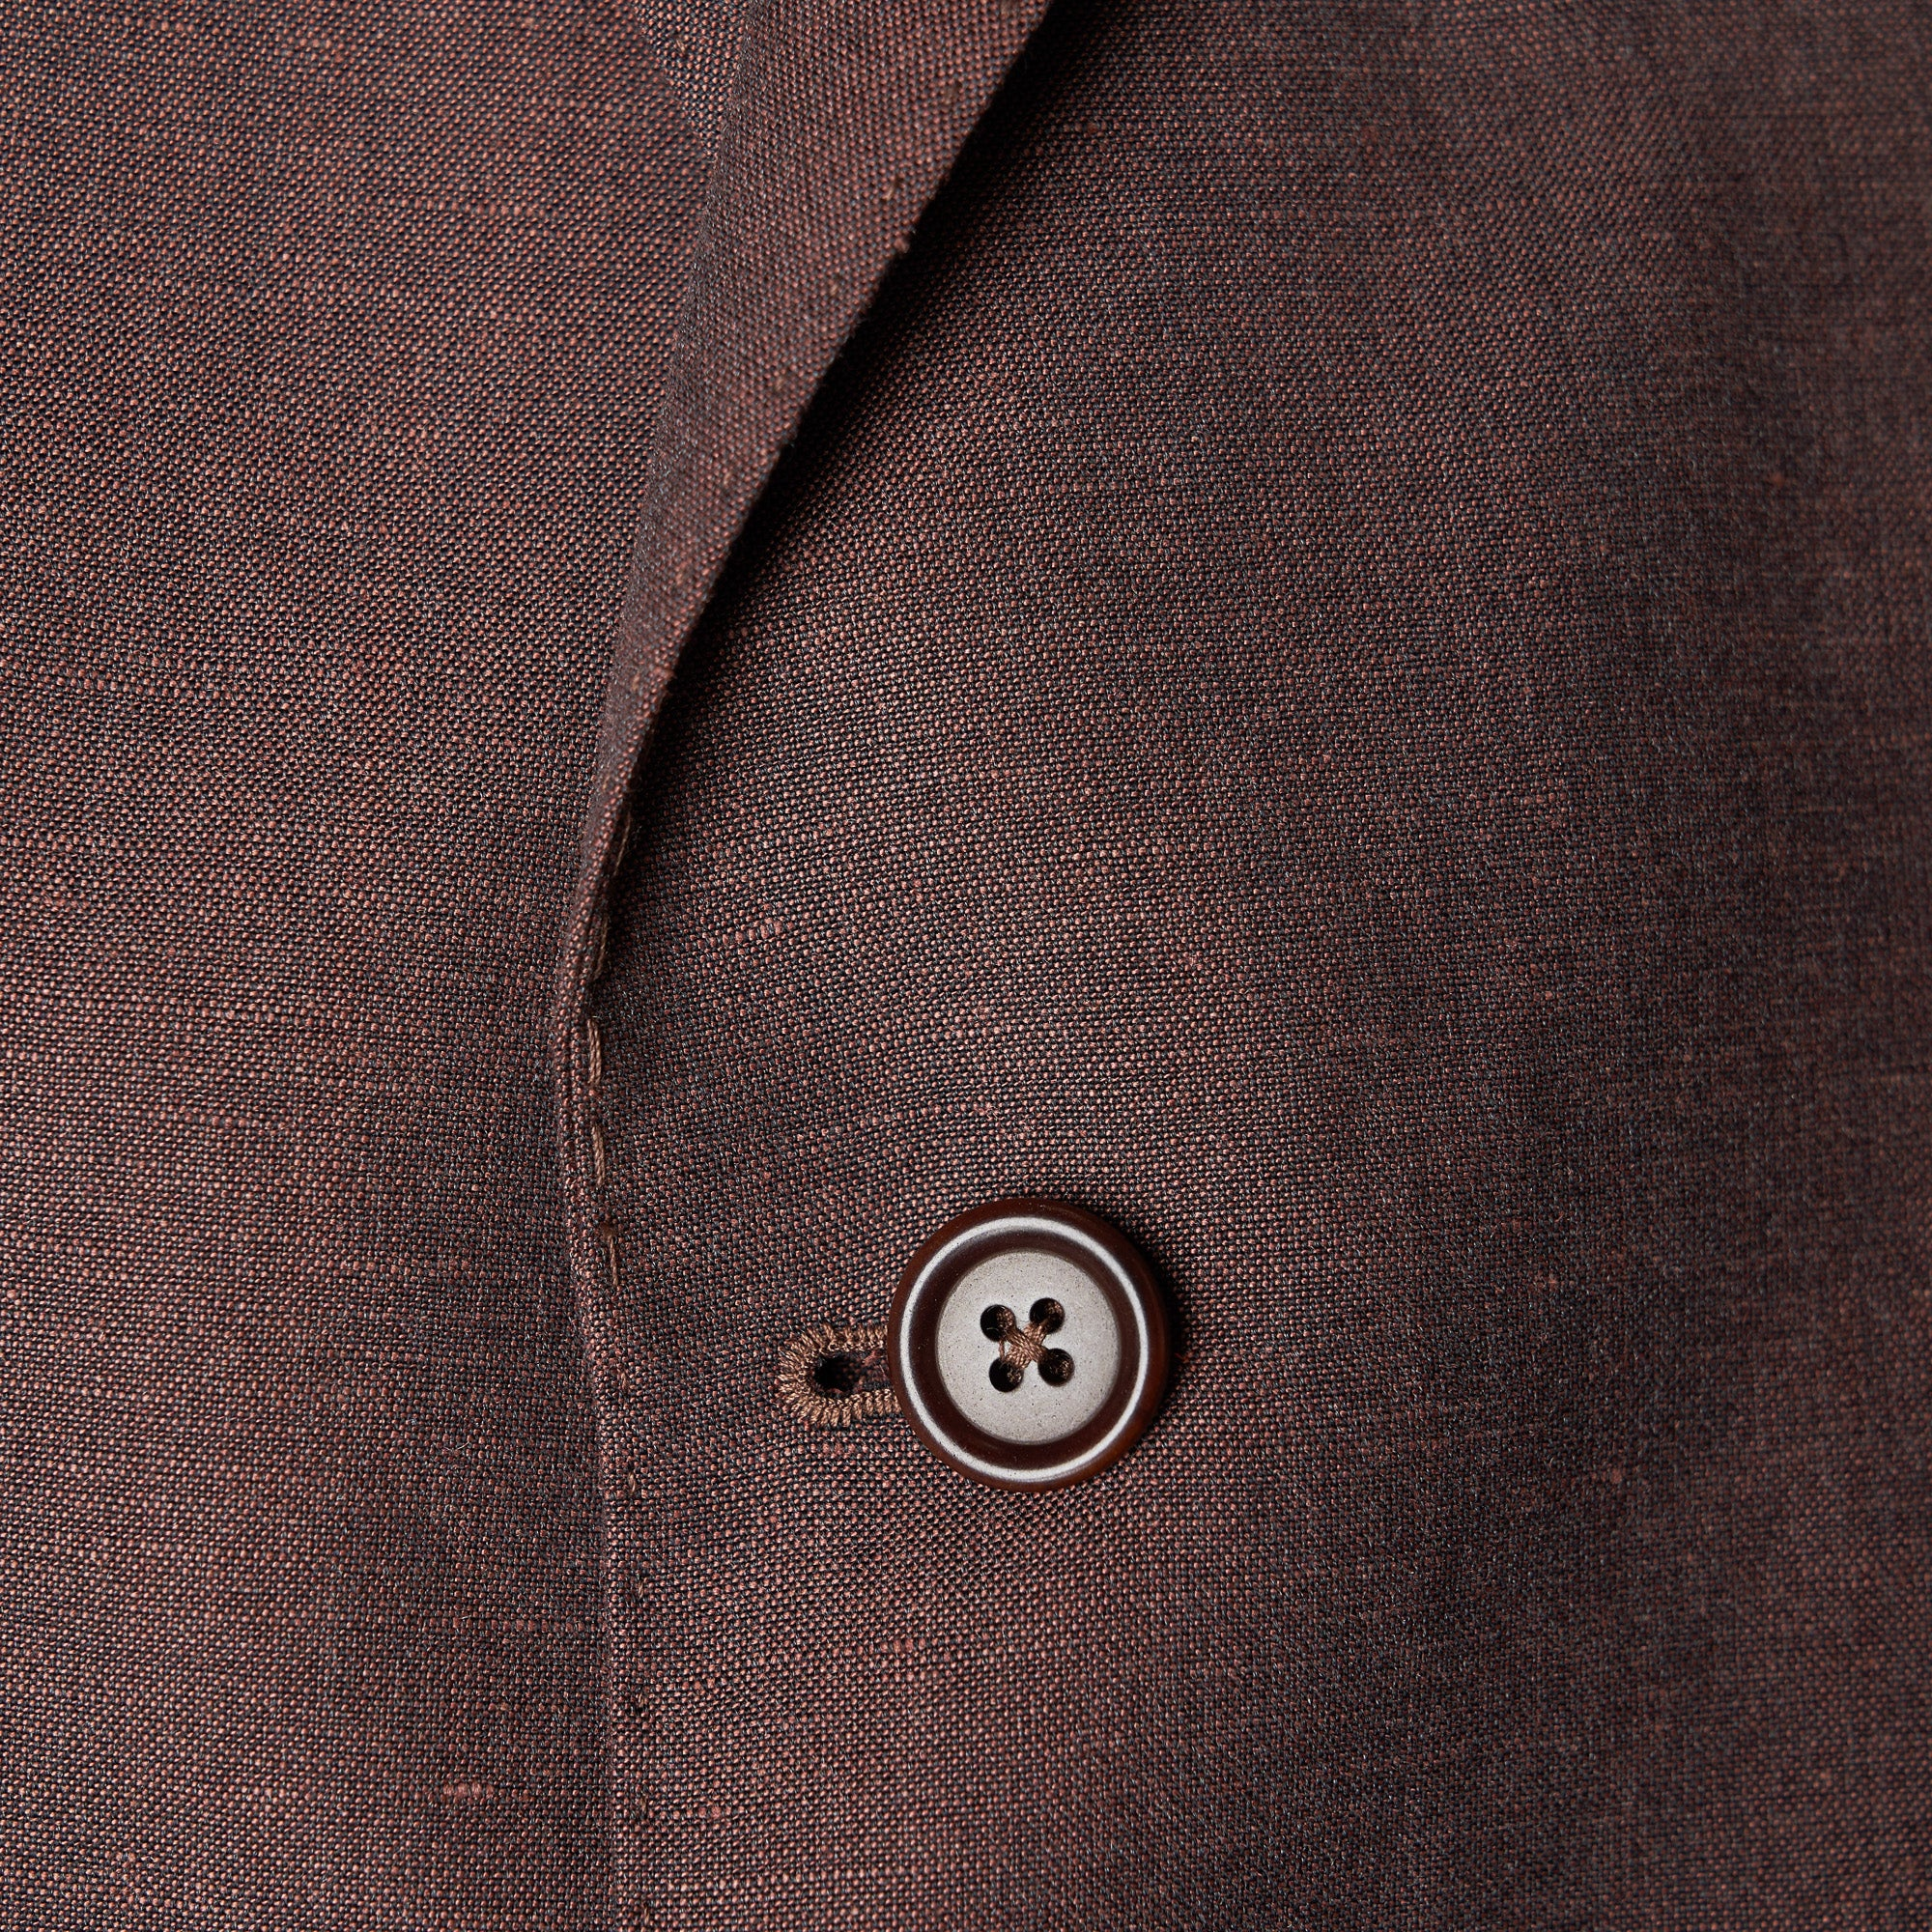 Unstructured Linen Jackets - Brown